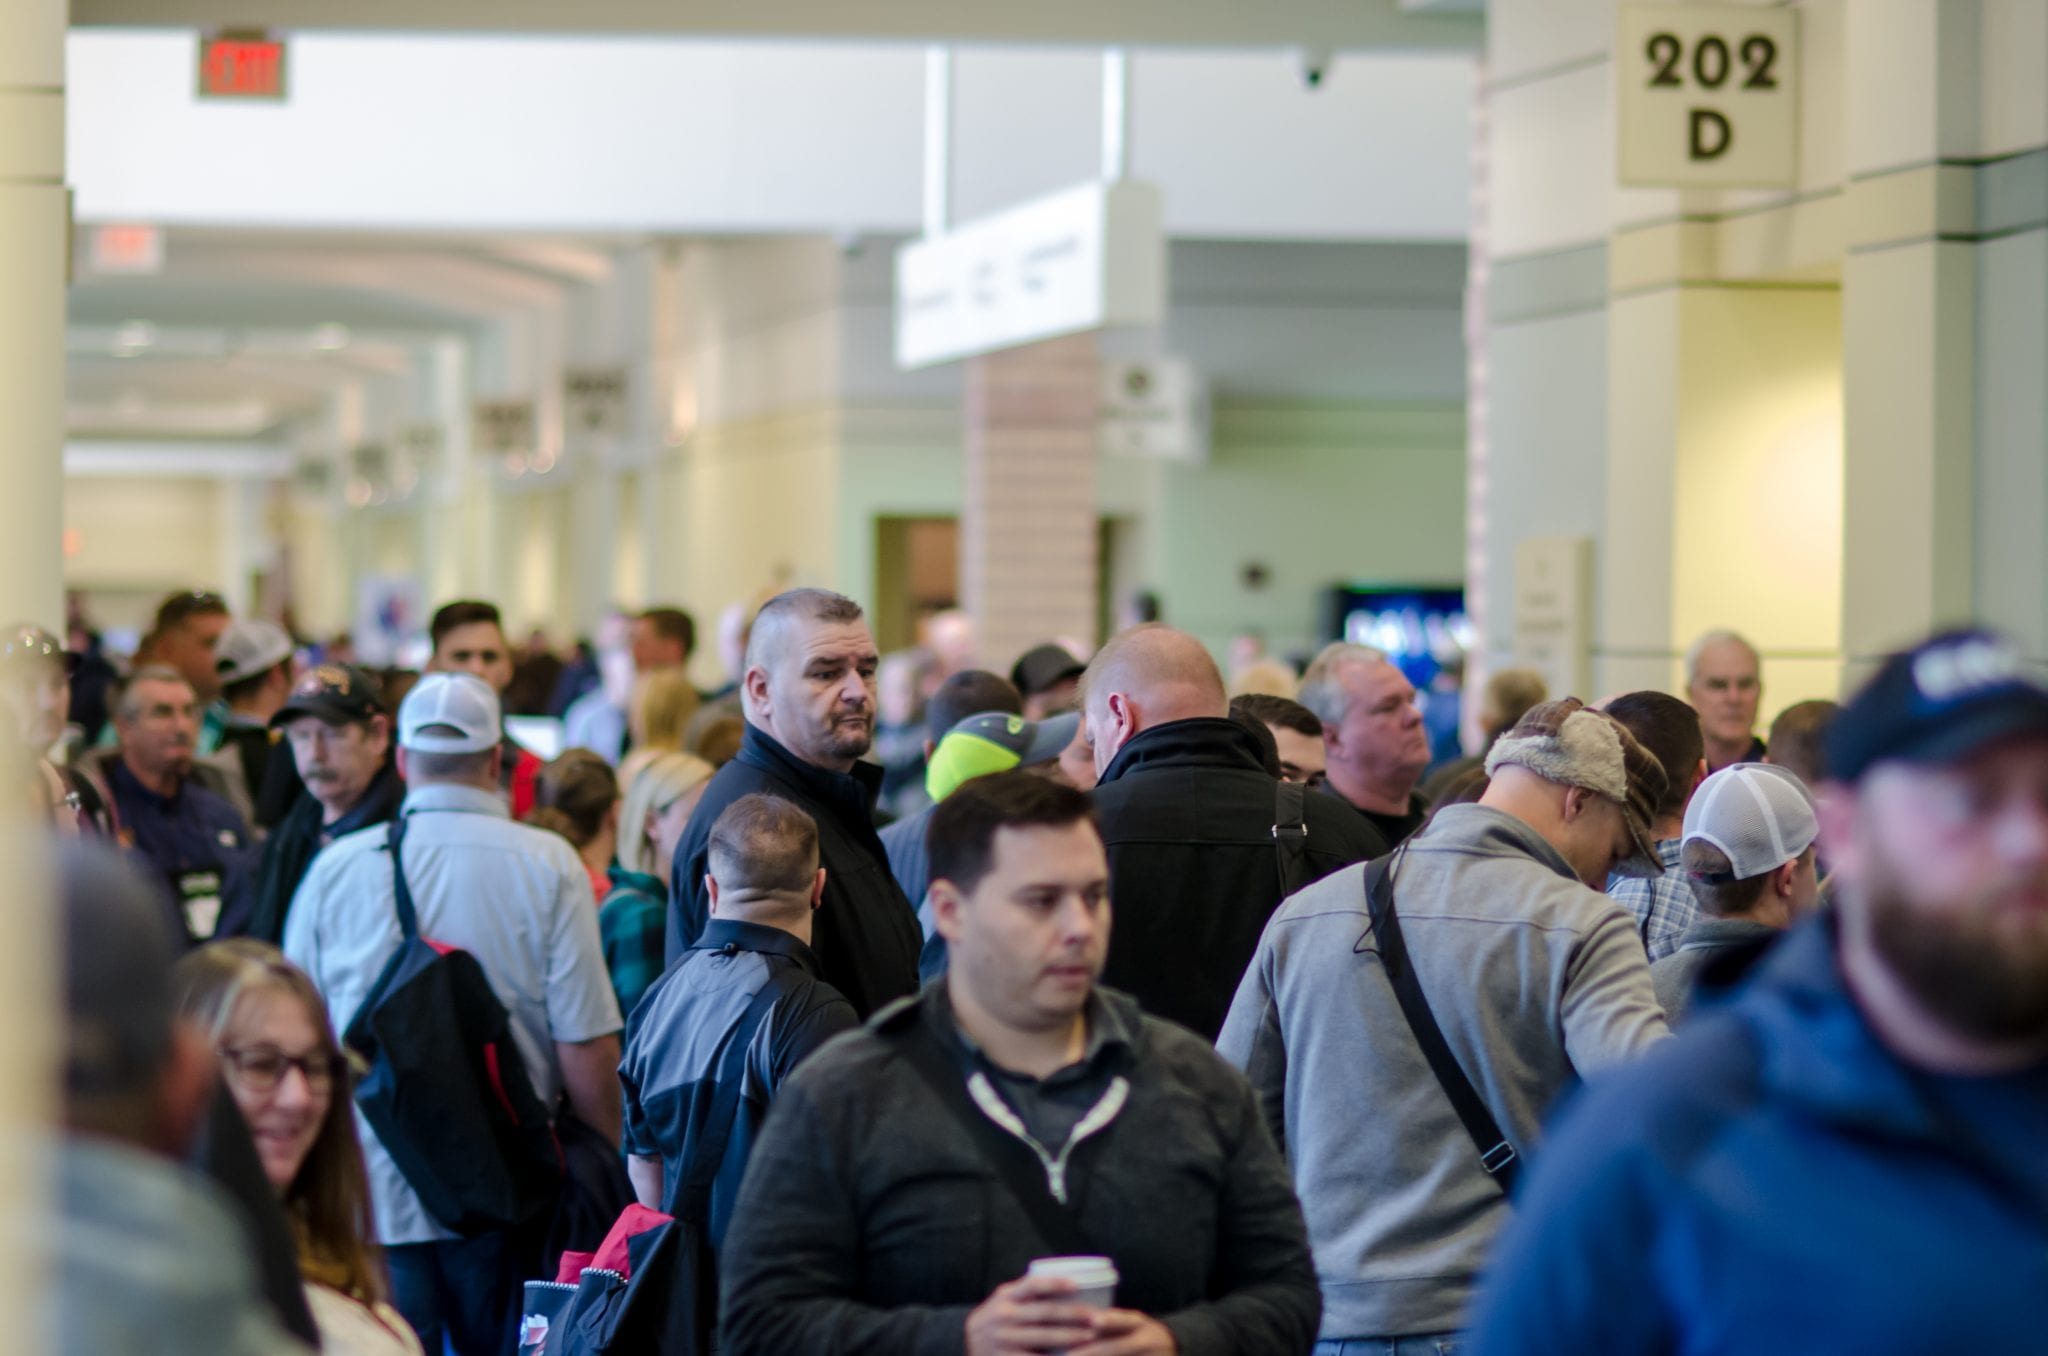 Conference attendees and exhibitors in concourse area | Texas EMS Conference | Austin, TX